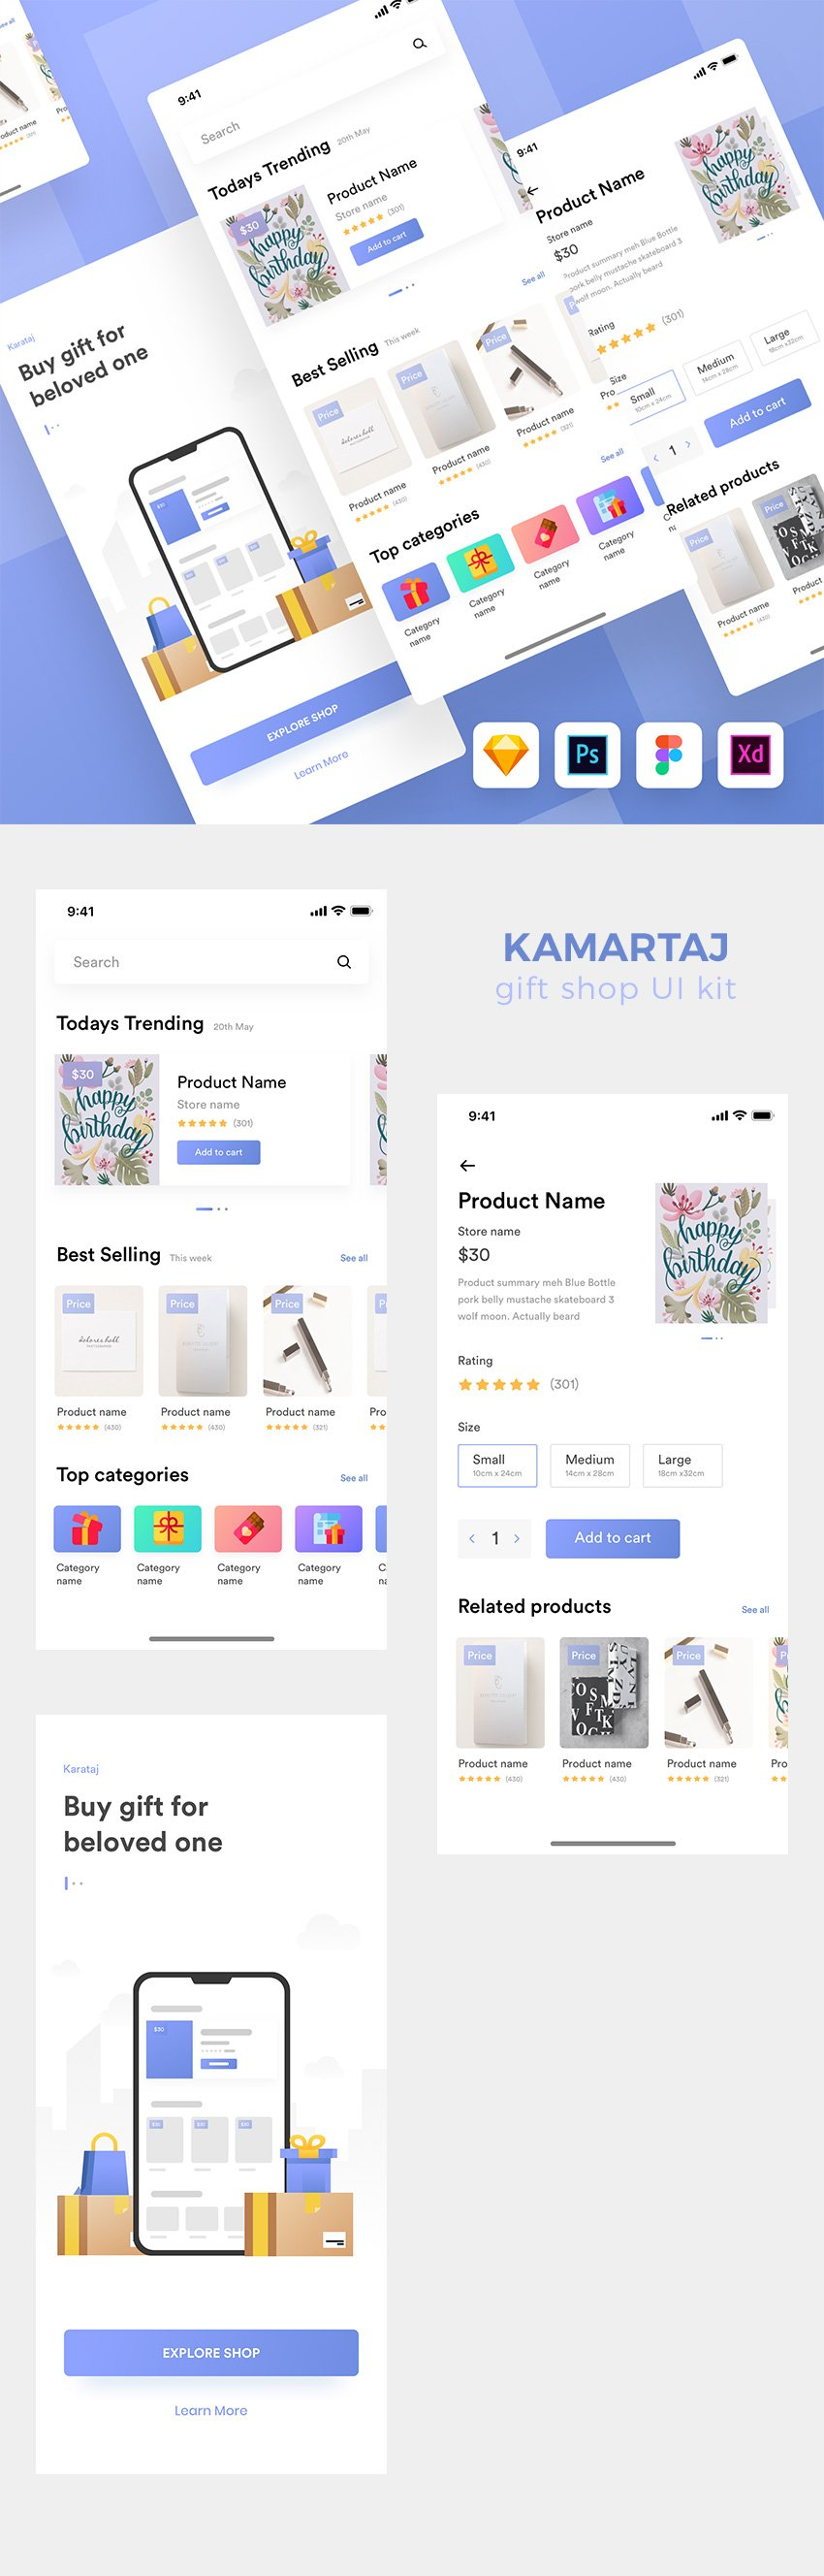 Kamartaj Gift Shop Mobile UI Kit for Figma, Sketch, PSD and Xd - Free Download